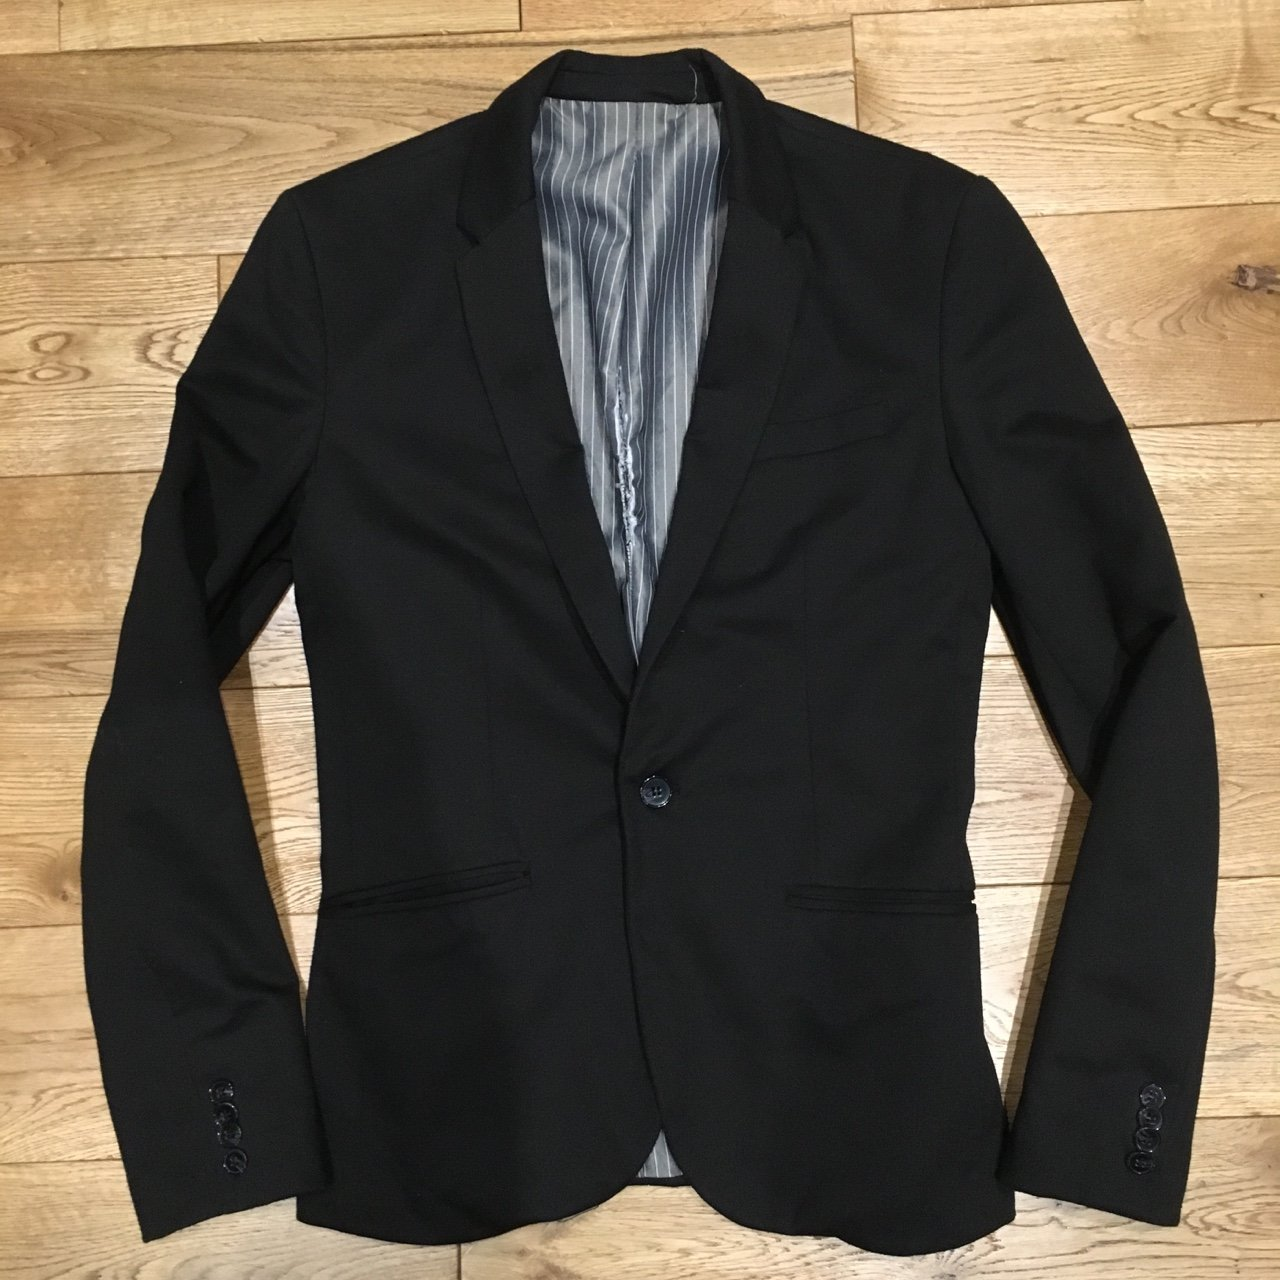 finest selection 6bfd3 ba00a  georgioanastasi. 3 years ago. London, UK. Zara Men s Black Blazer.